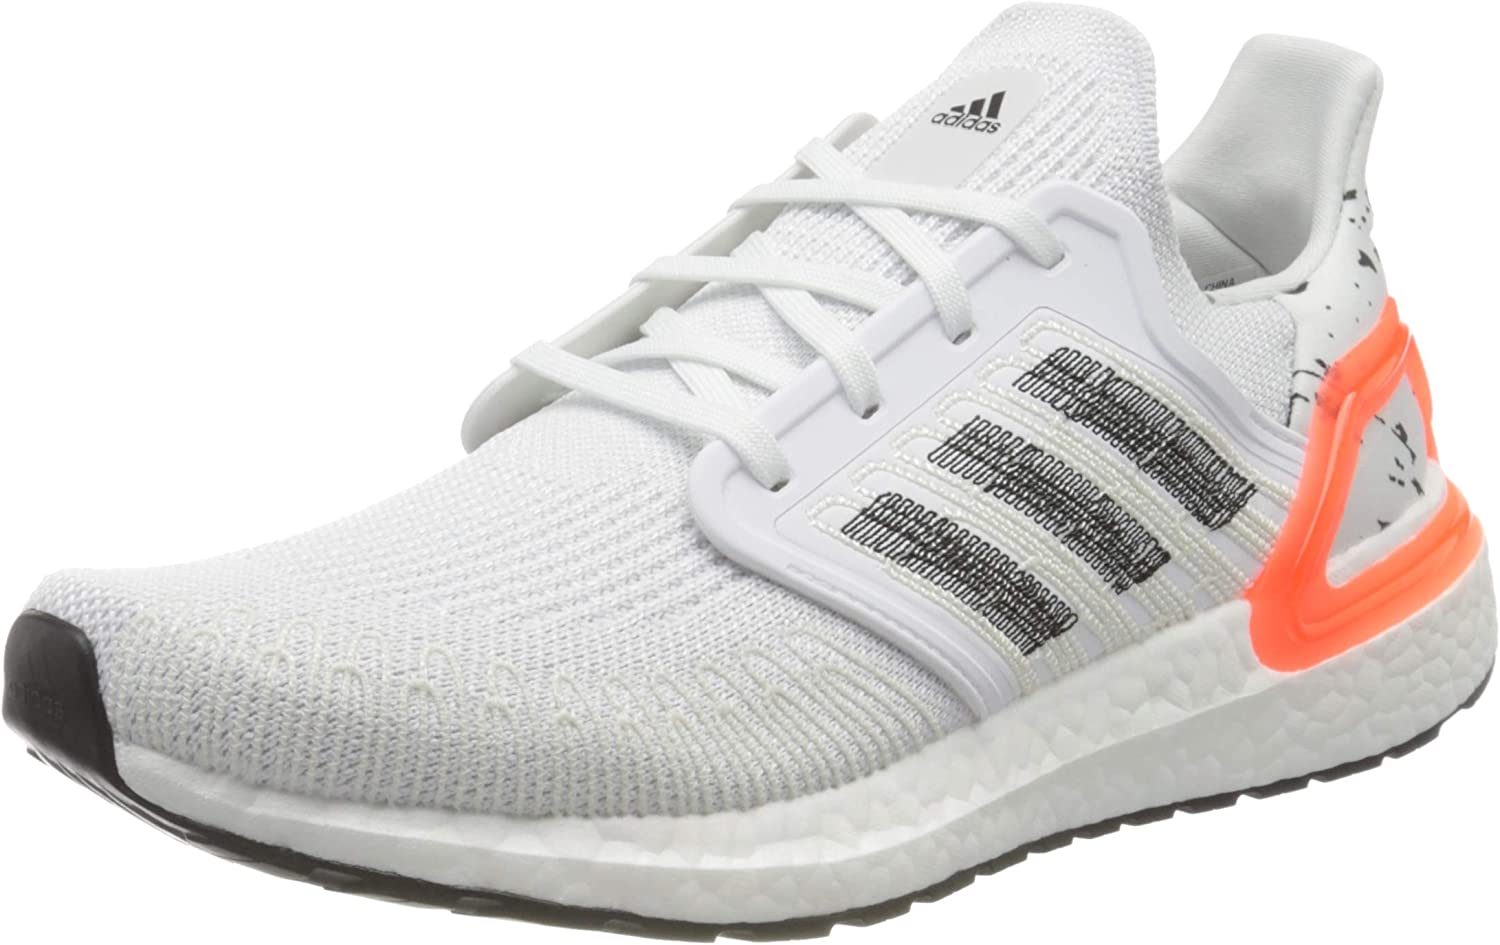 adidas Ultra Boost 20 Running Shoes